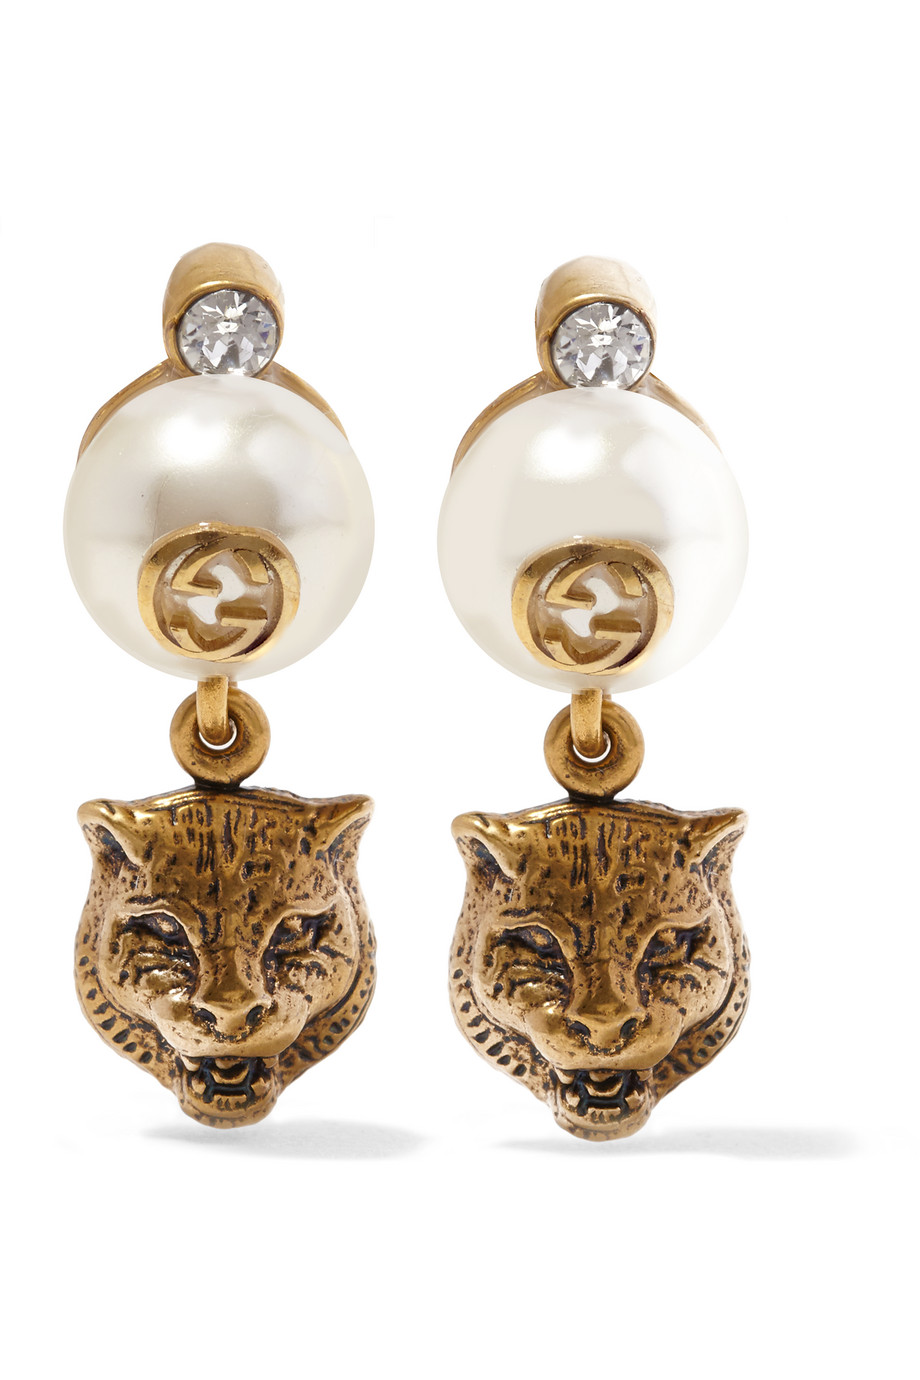 Gucci Burnished Gold-Plated, Crystal and Faux Pearl Clip Earrings